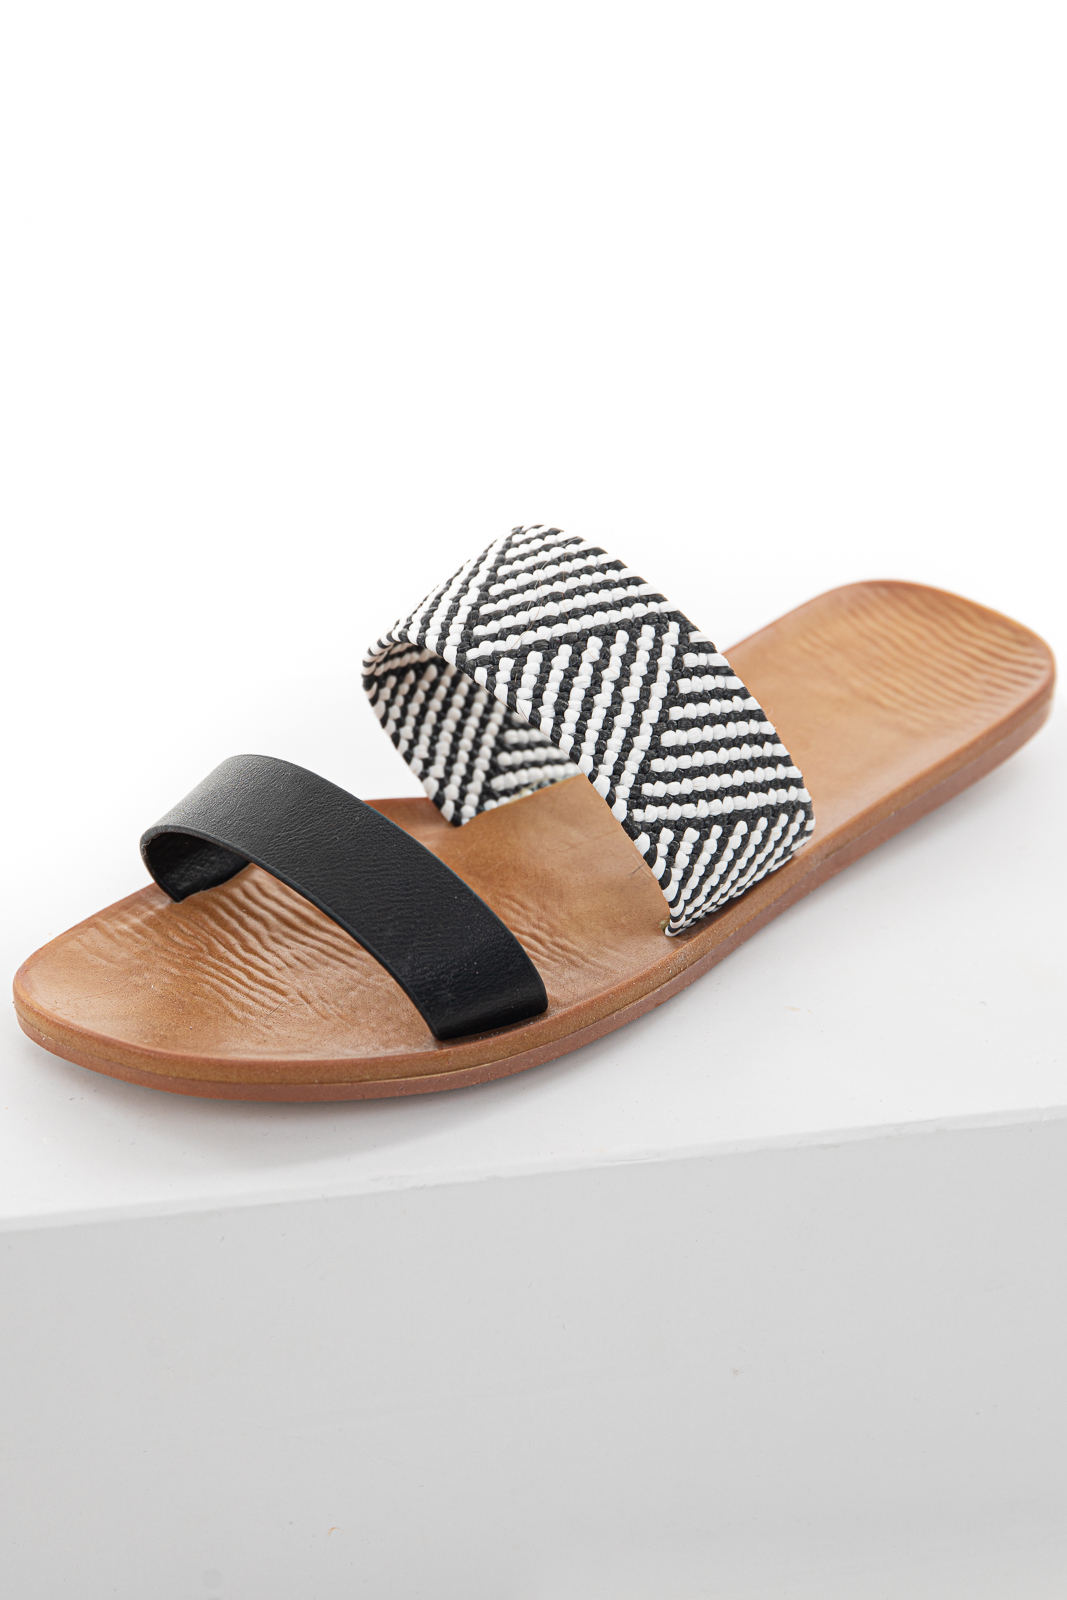 Black and Pearl Open Toe Sandal with Woven Strap Detail